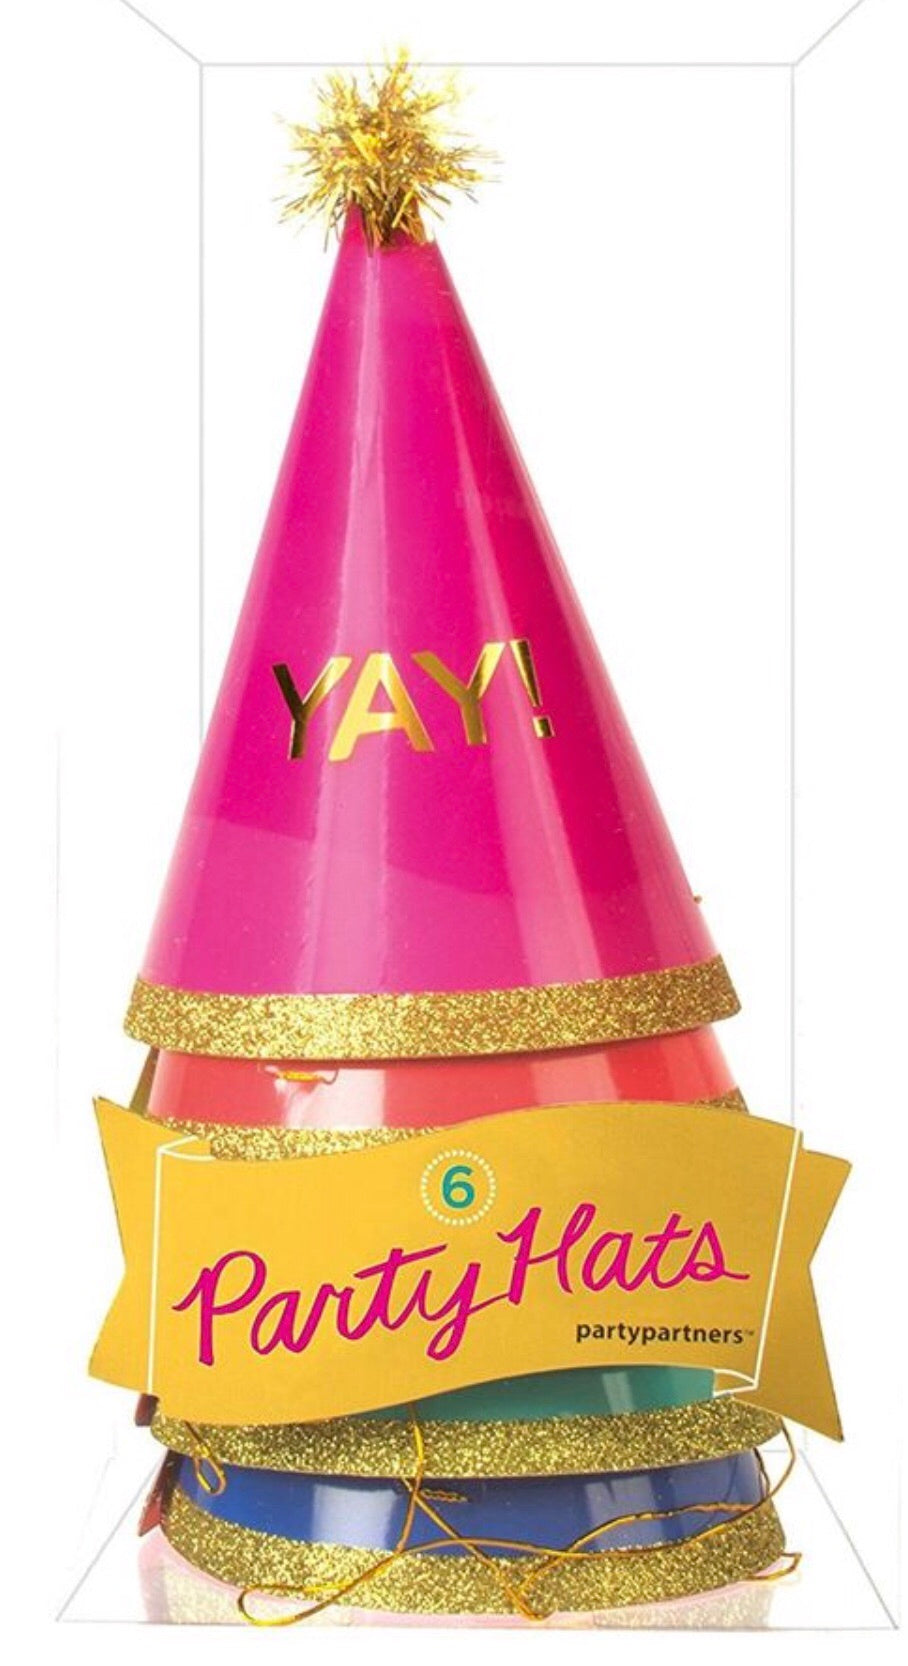 yay party hats